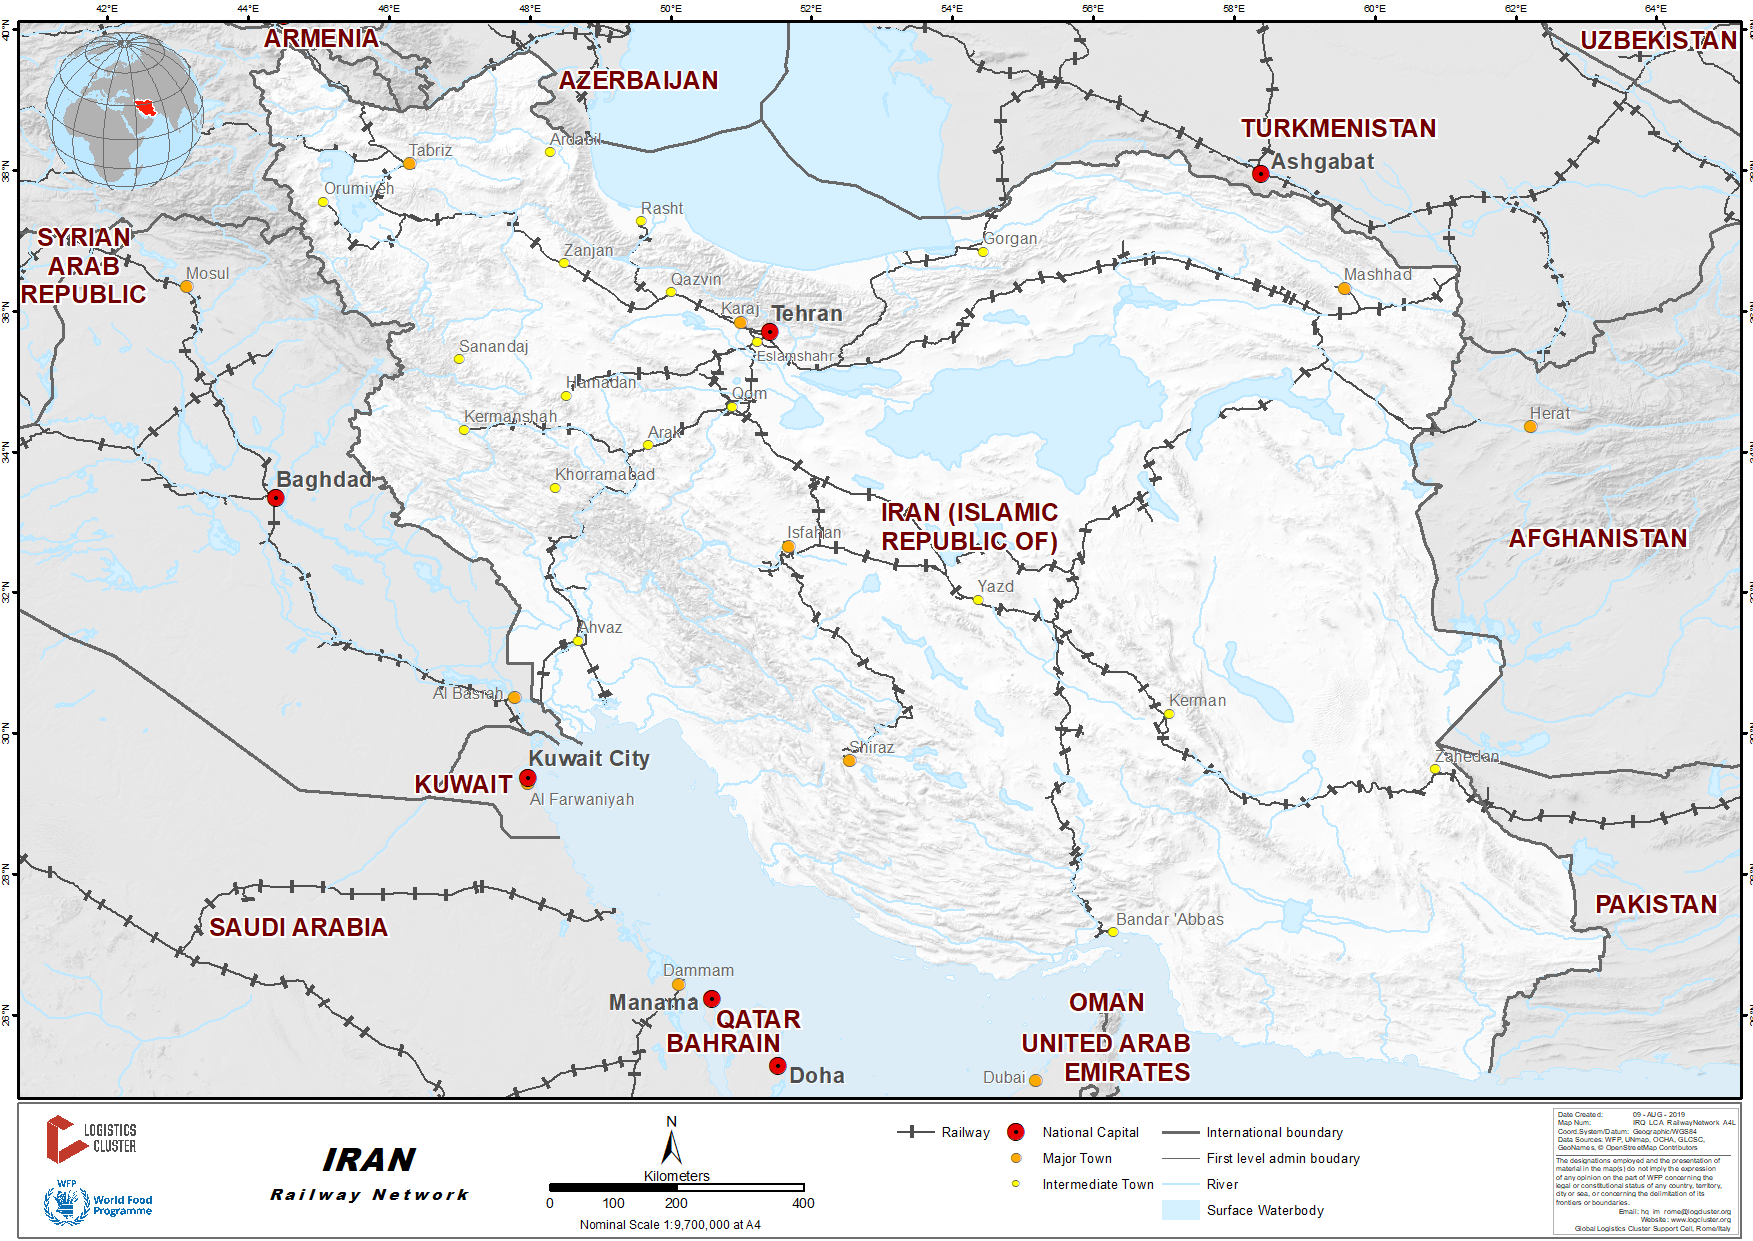 2 4 Iran Railway Assessment - Logistics Capacity Assessment